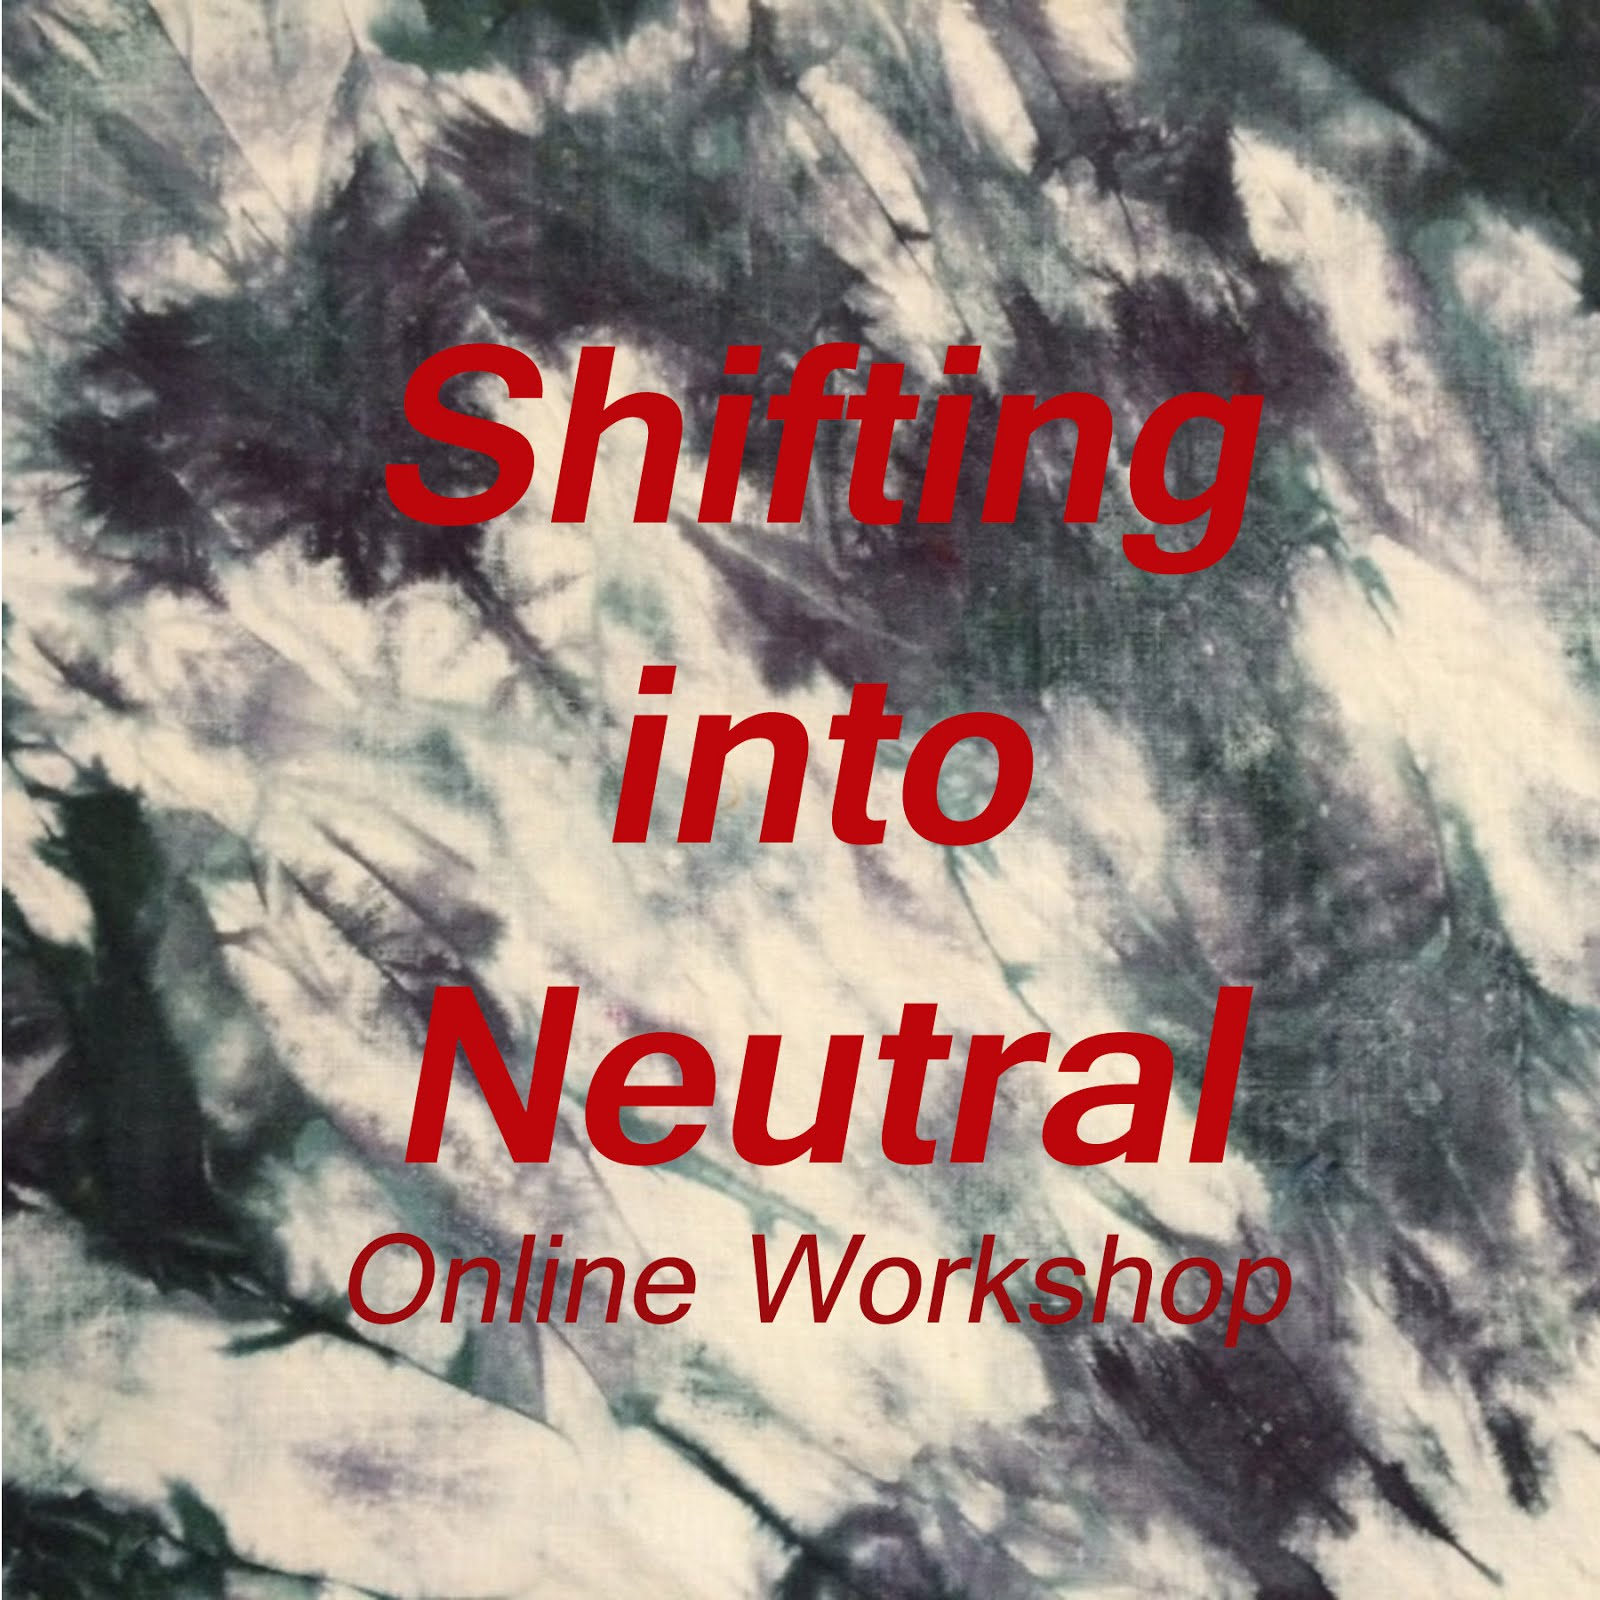 Shifting into Neutral Online Workshop